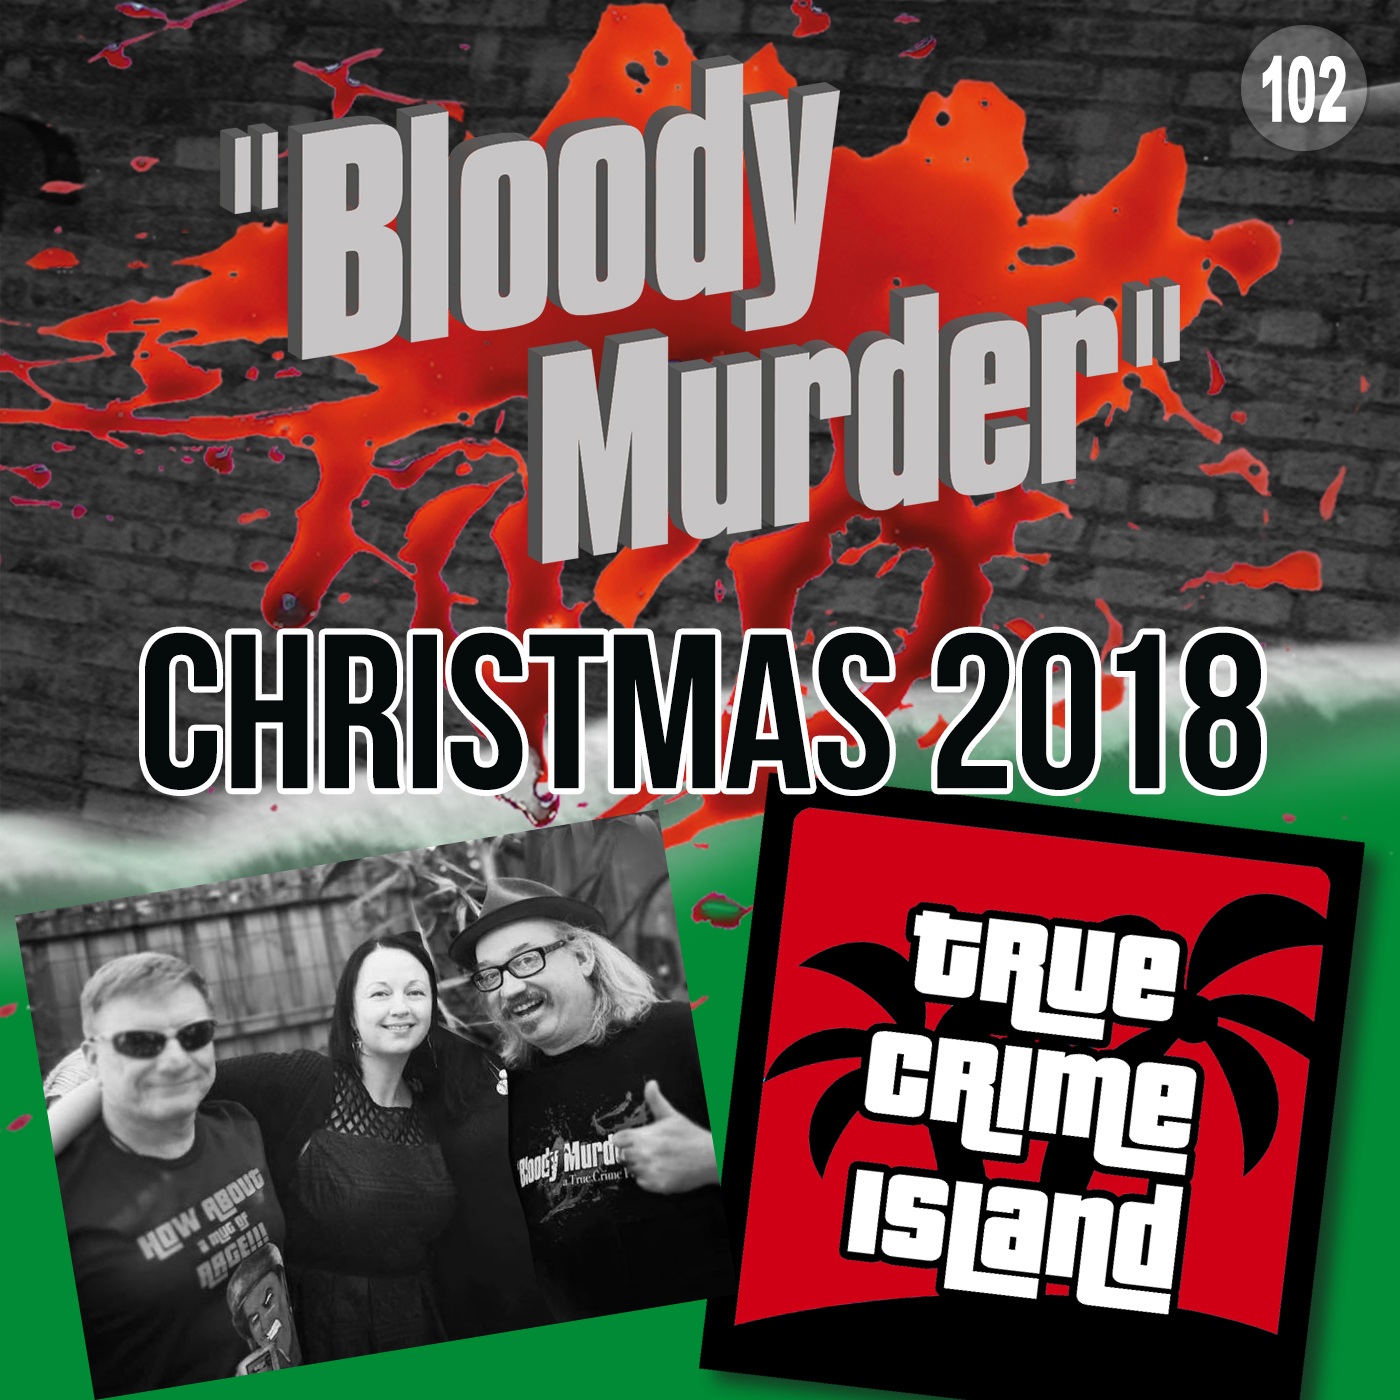 102 - Bloody Murder on True Crime Christmas Island!